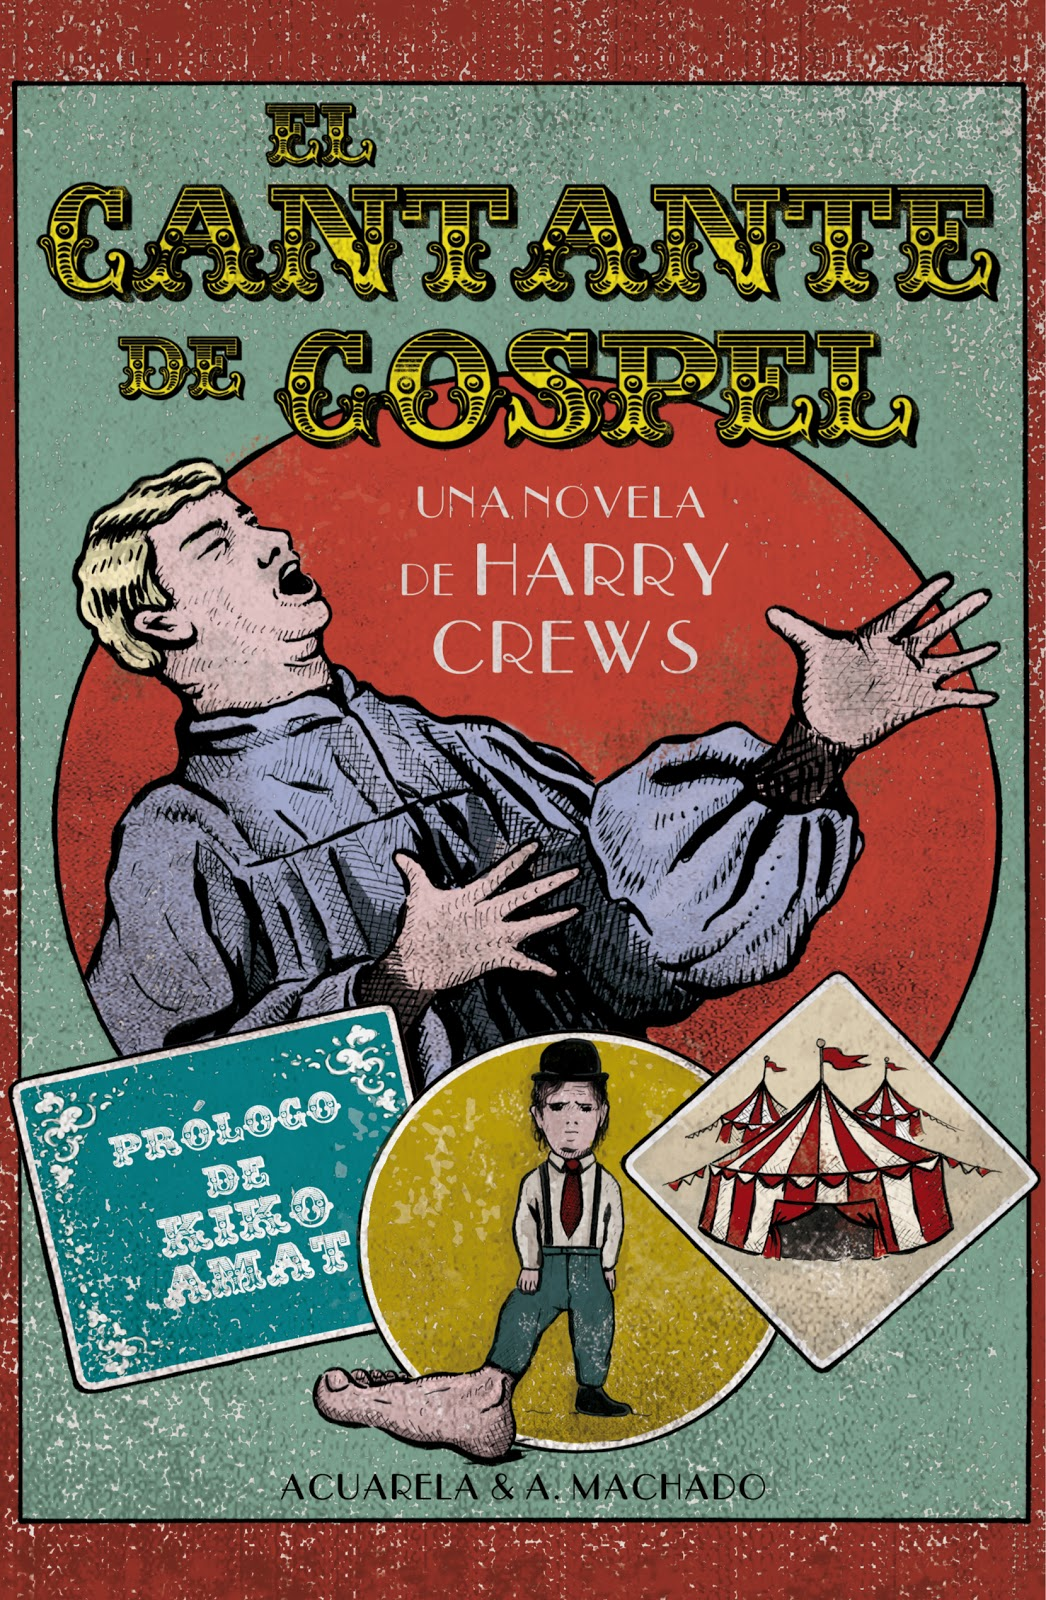 Machado Libros El Cantante De Gospel El Sucio Sur De Harry Crews